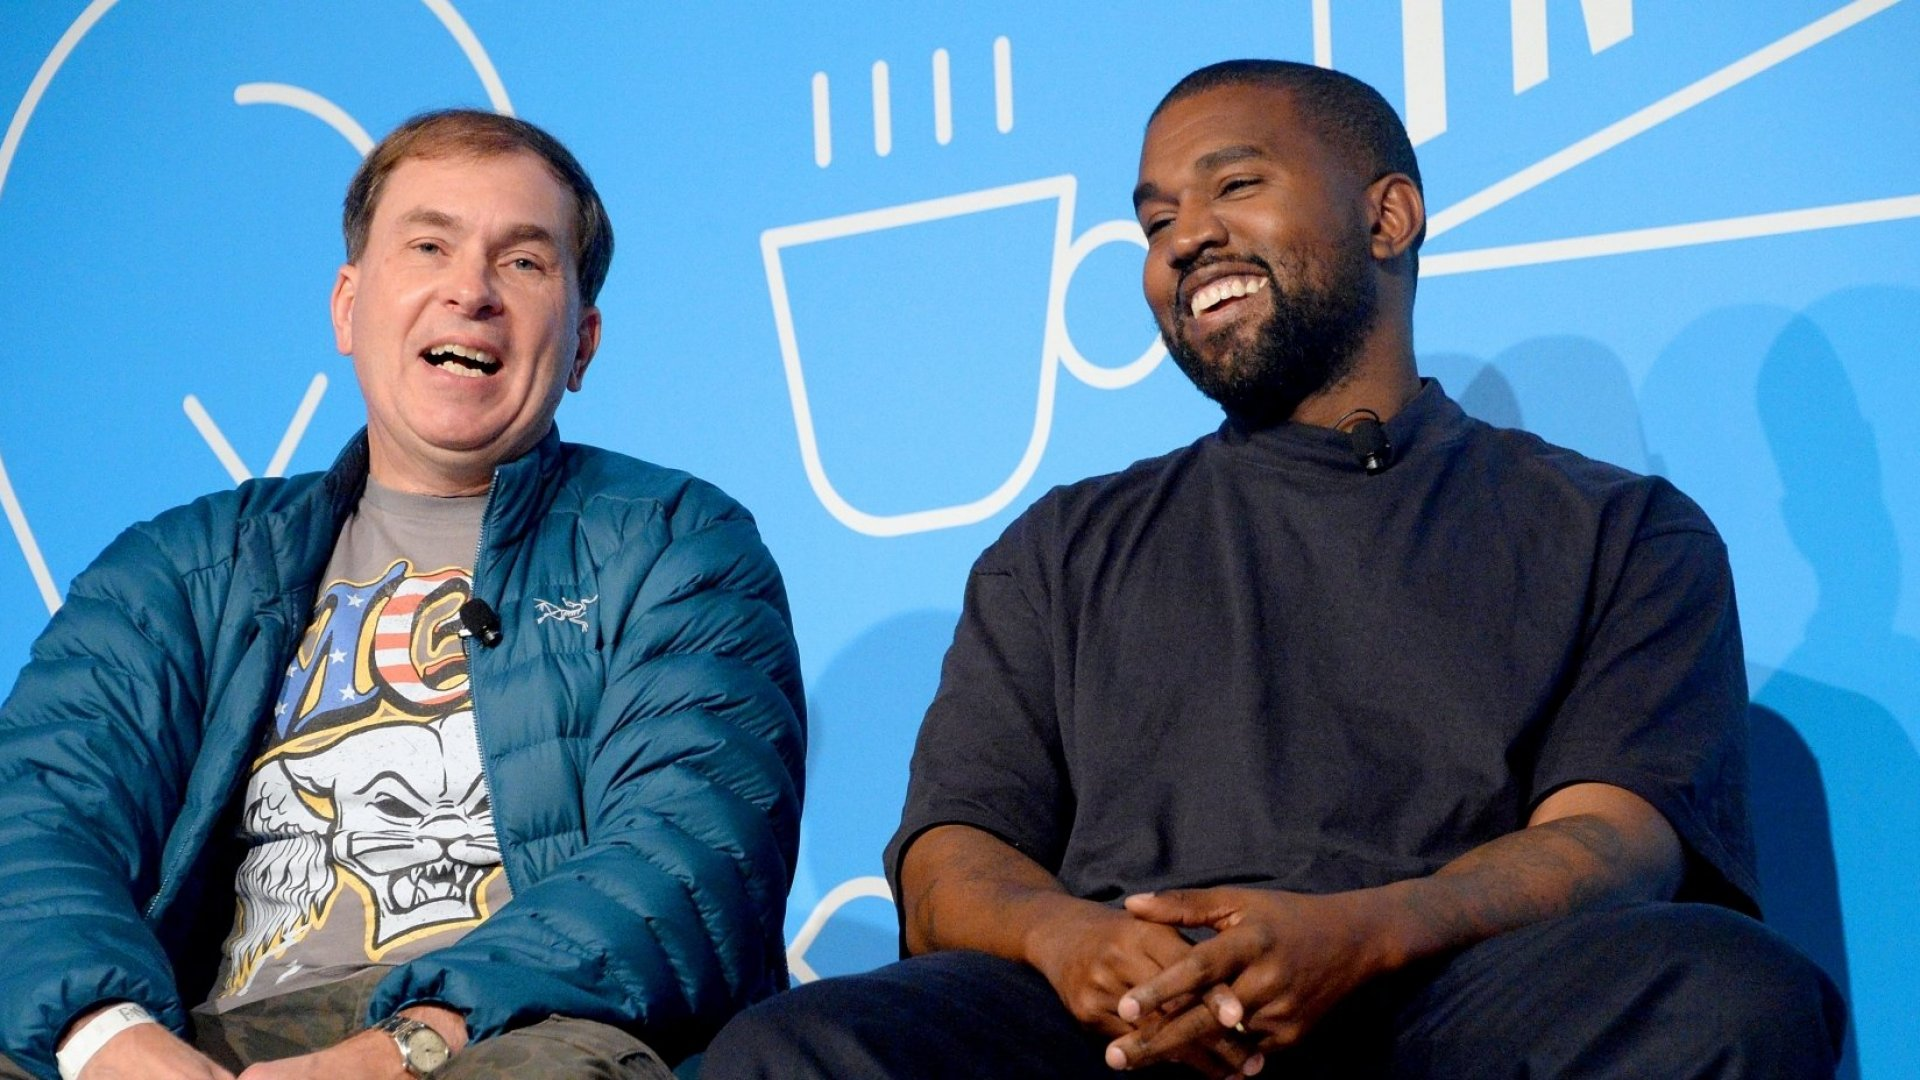 Kanye West onstage with designer Steven Smith at the Fast Company Innovation Festival.